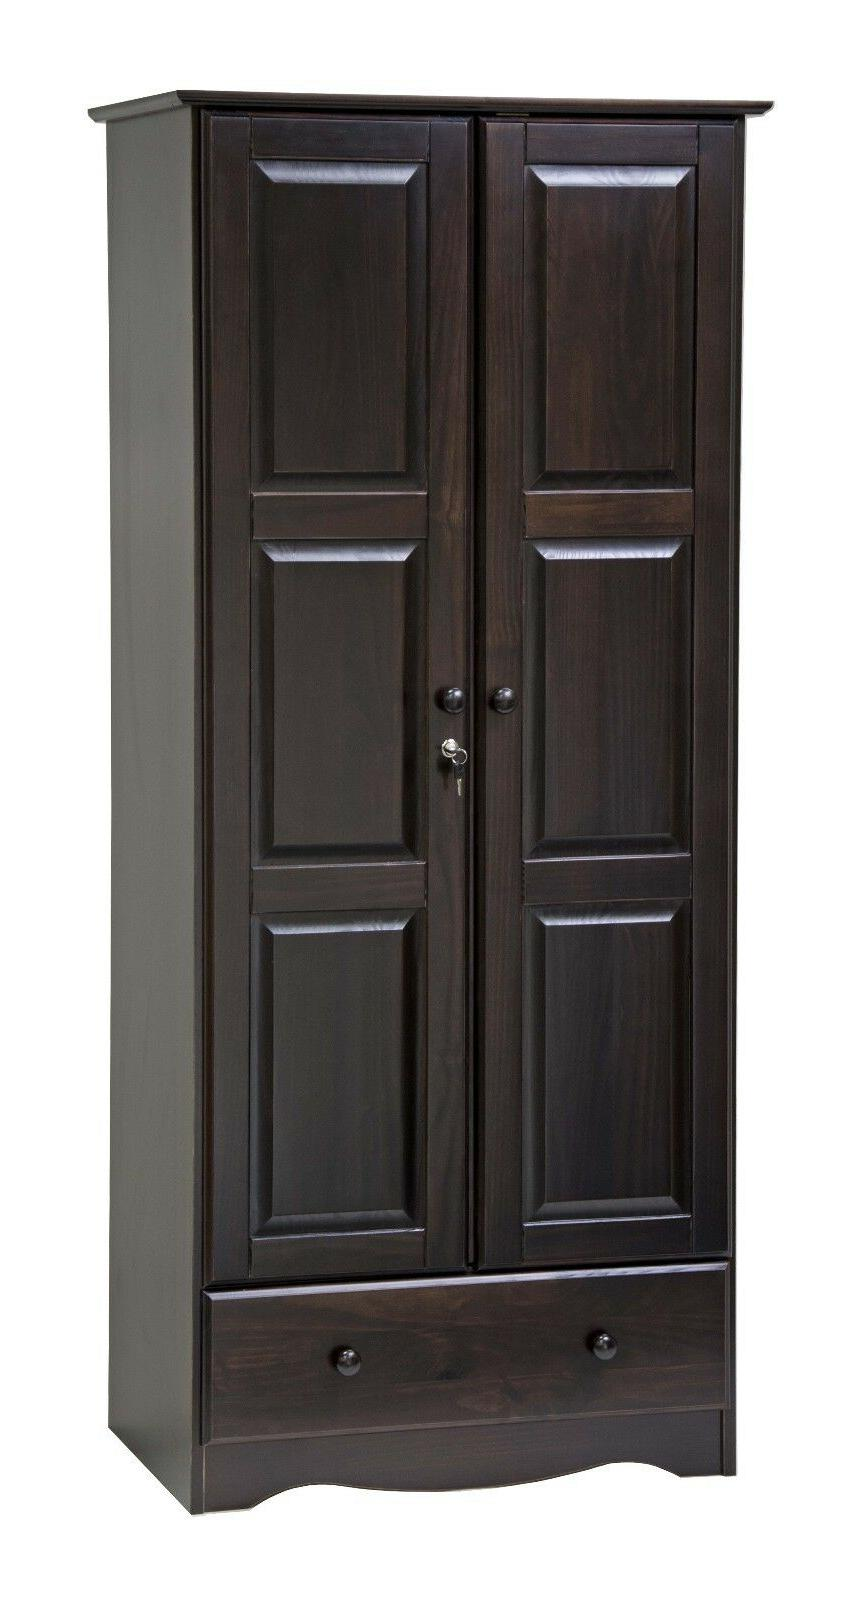 100% Solid Wood Flexible Wardrobe/Armoire/Closet by Palace Imports, 3